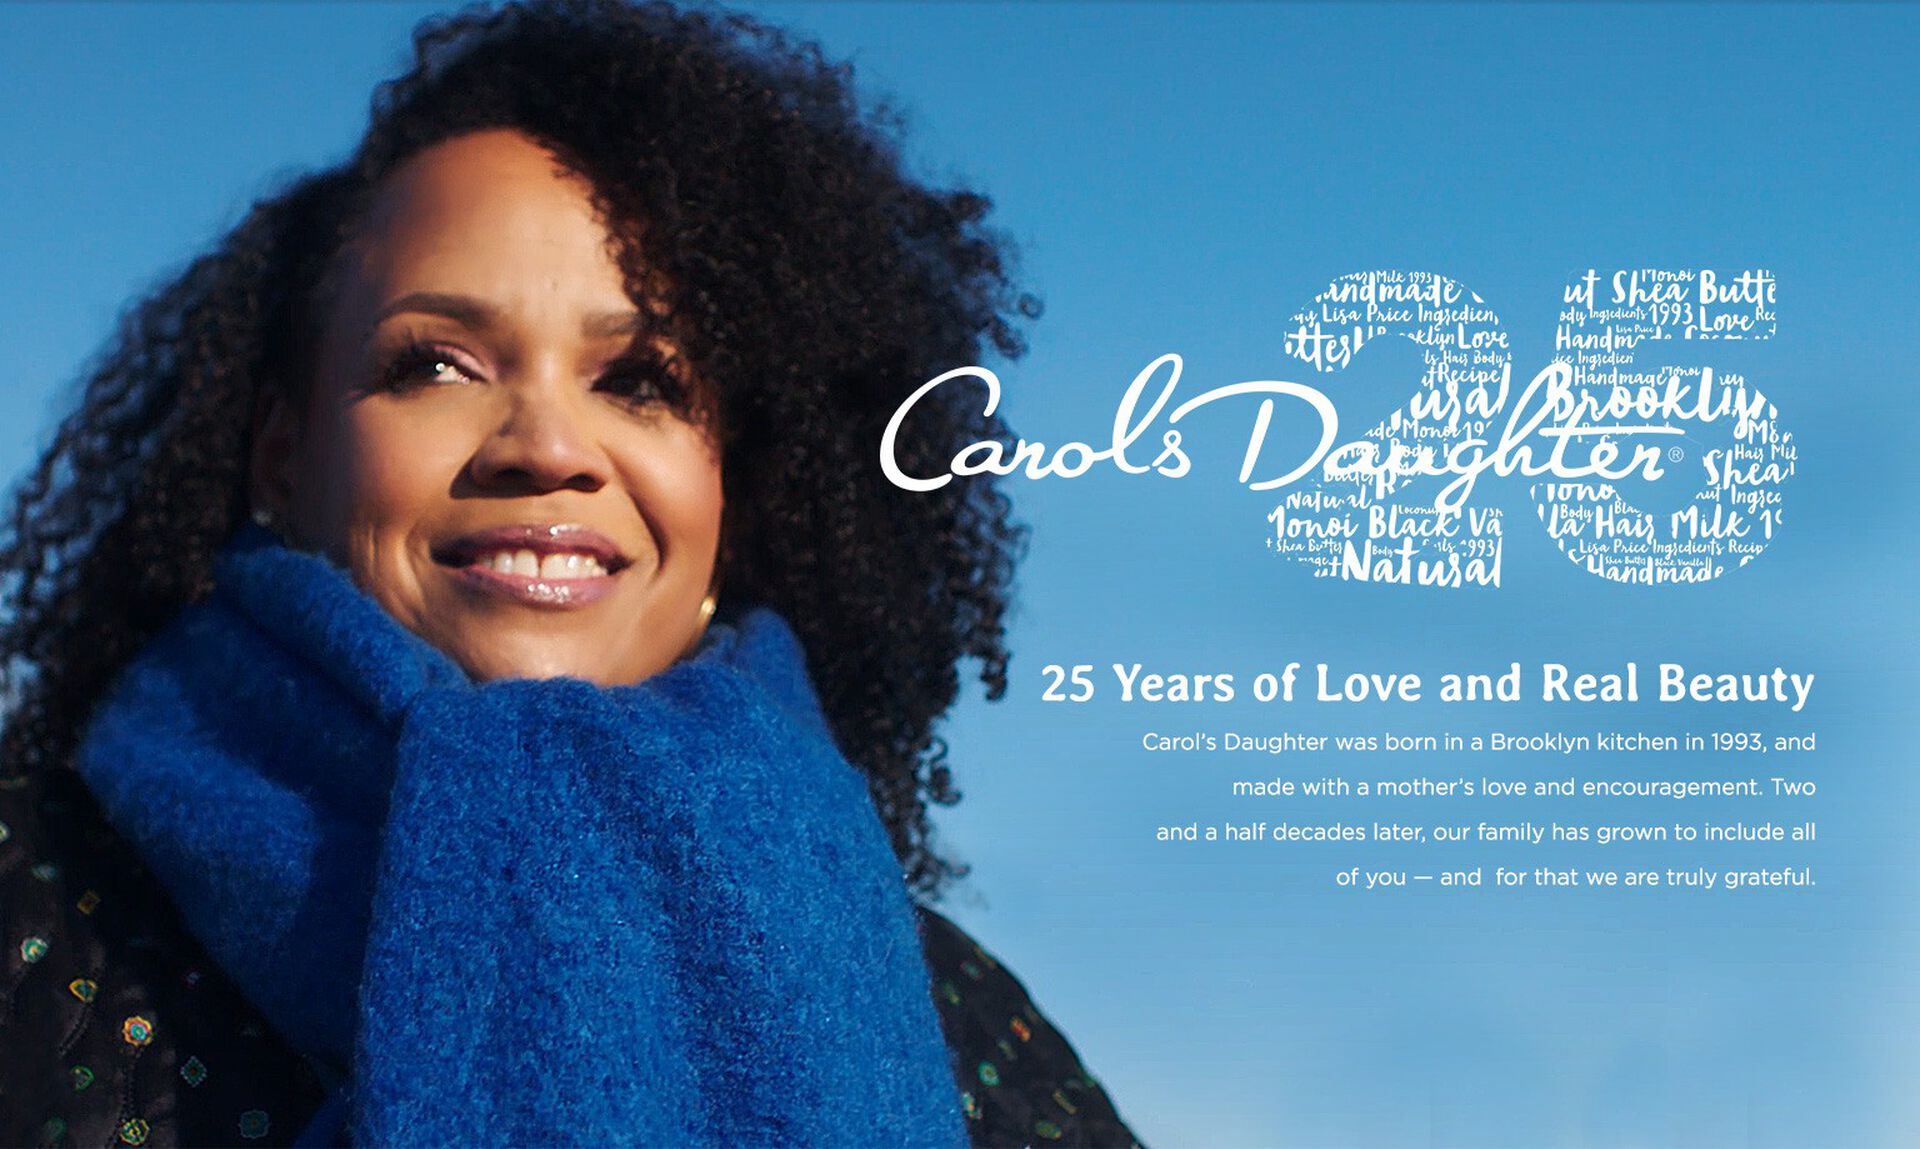 25 Years of Love and Real Beauty. Carol's Daughter was born in a Brooklyn kitchen in 1993, and made with a mother's love and encouragement. Two and a half decades later, our family has grown to include all of you — and for that we are truly grateful.